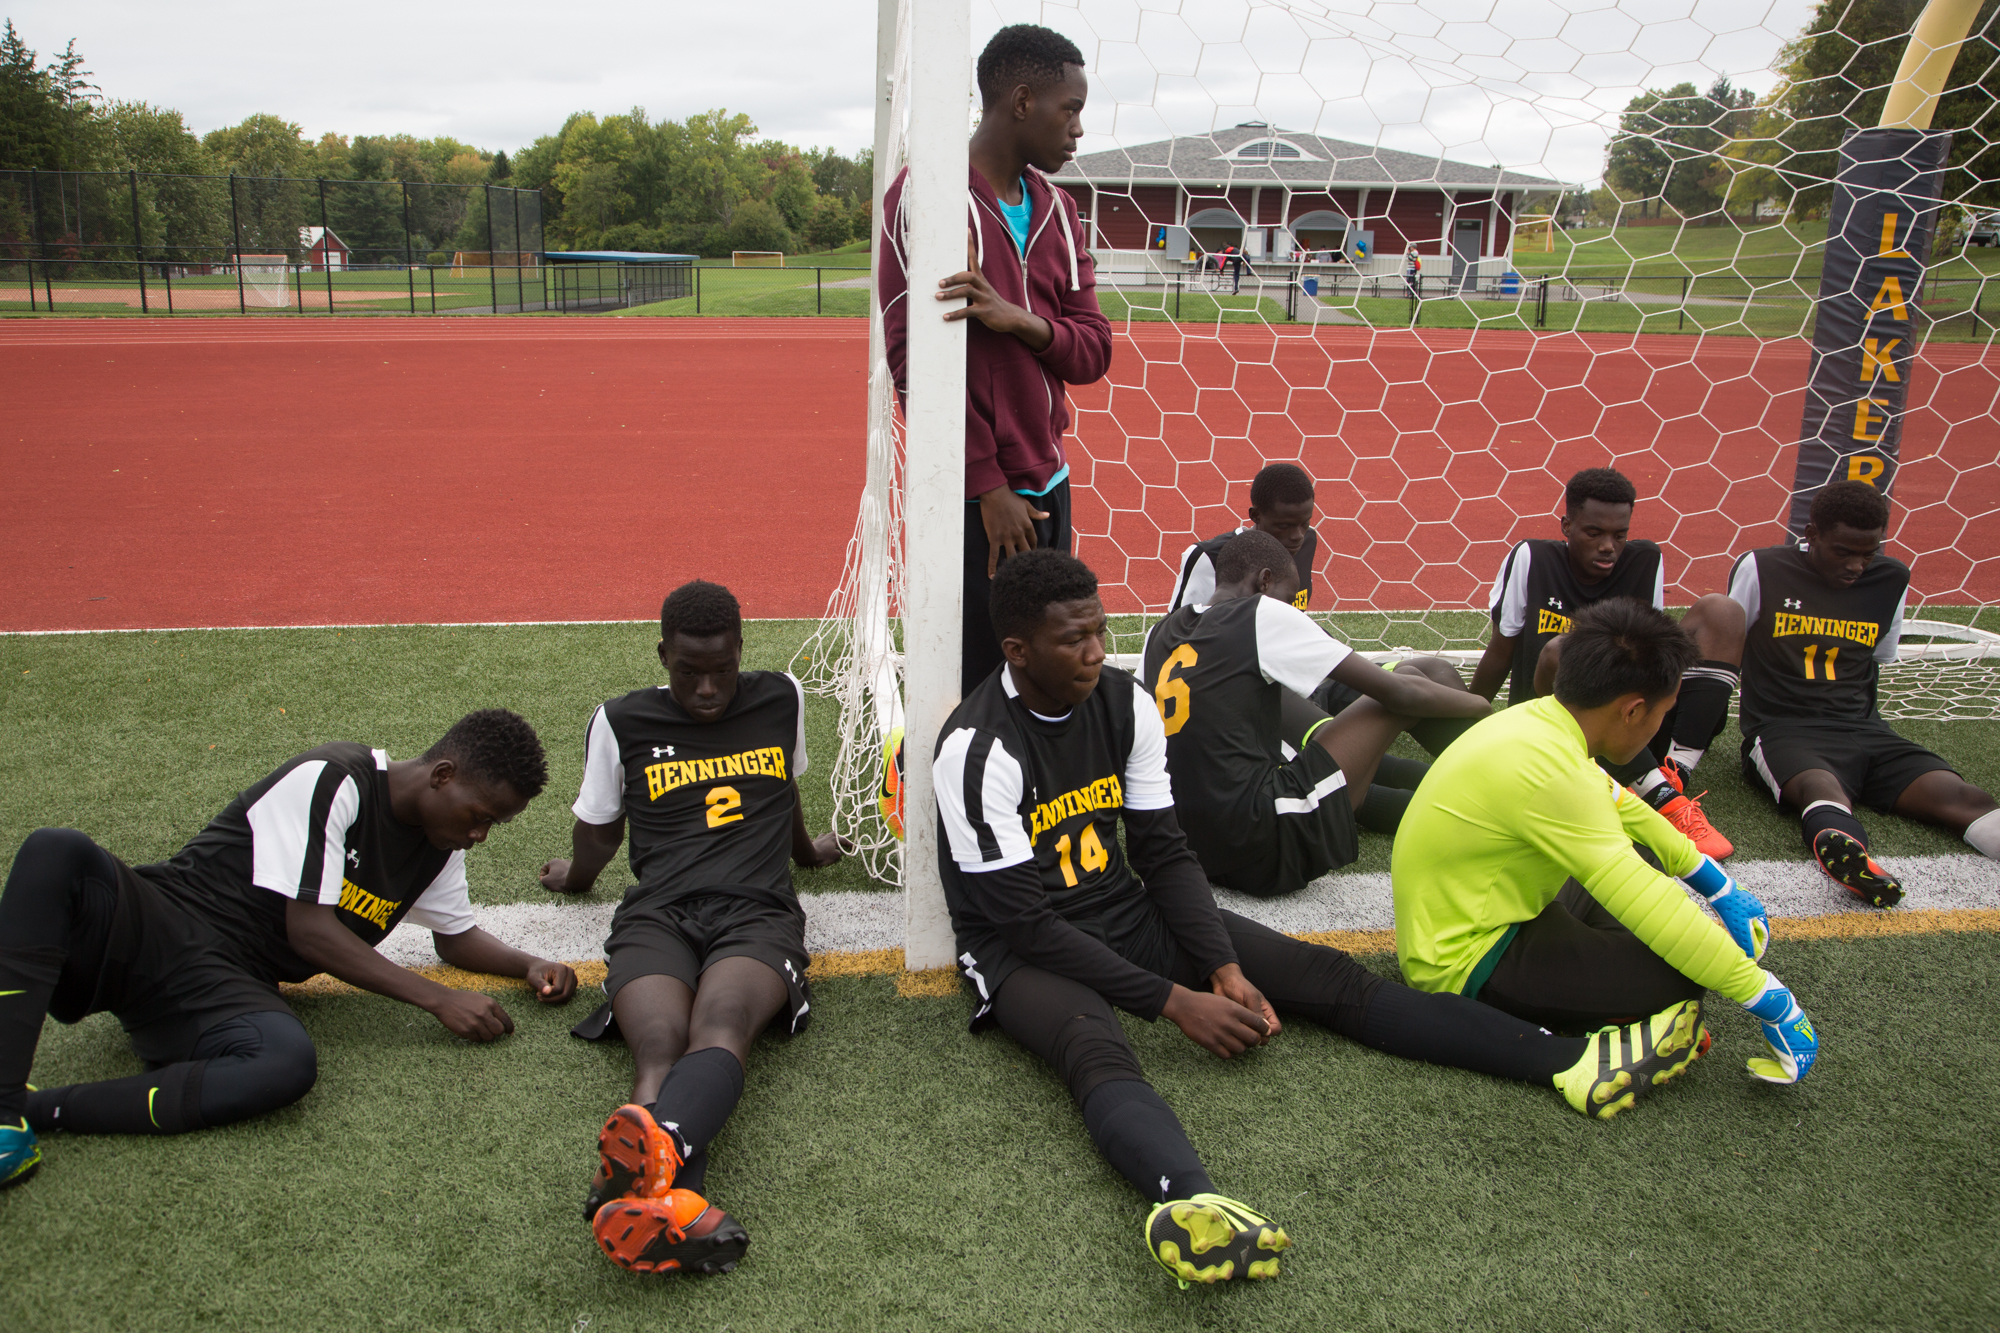 """""""They are like young men but they have to be adults because their parents can't speak English"""", says coach Scott Fiello. Some players in the team have to translate for their parents as they don't speak English, some are the only ones who know how to drive in the family, so they have to take these responsibilities in addition to studying and playing soccer."""